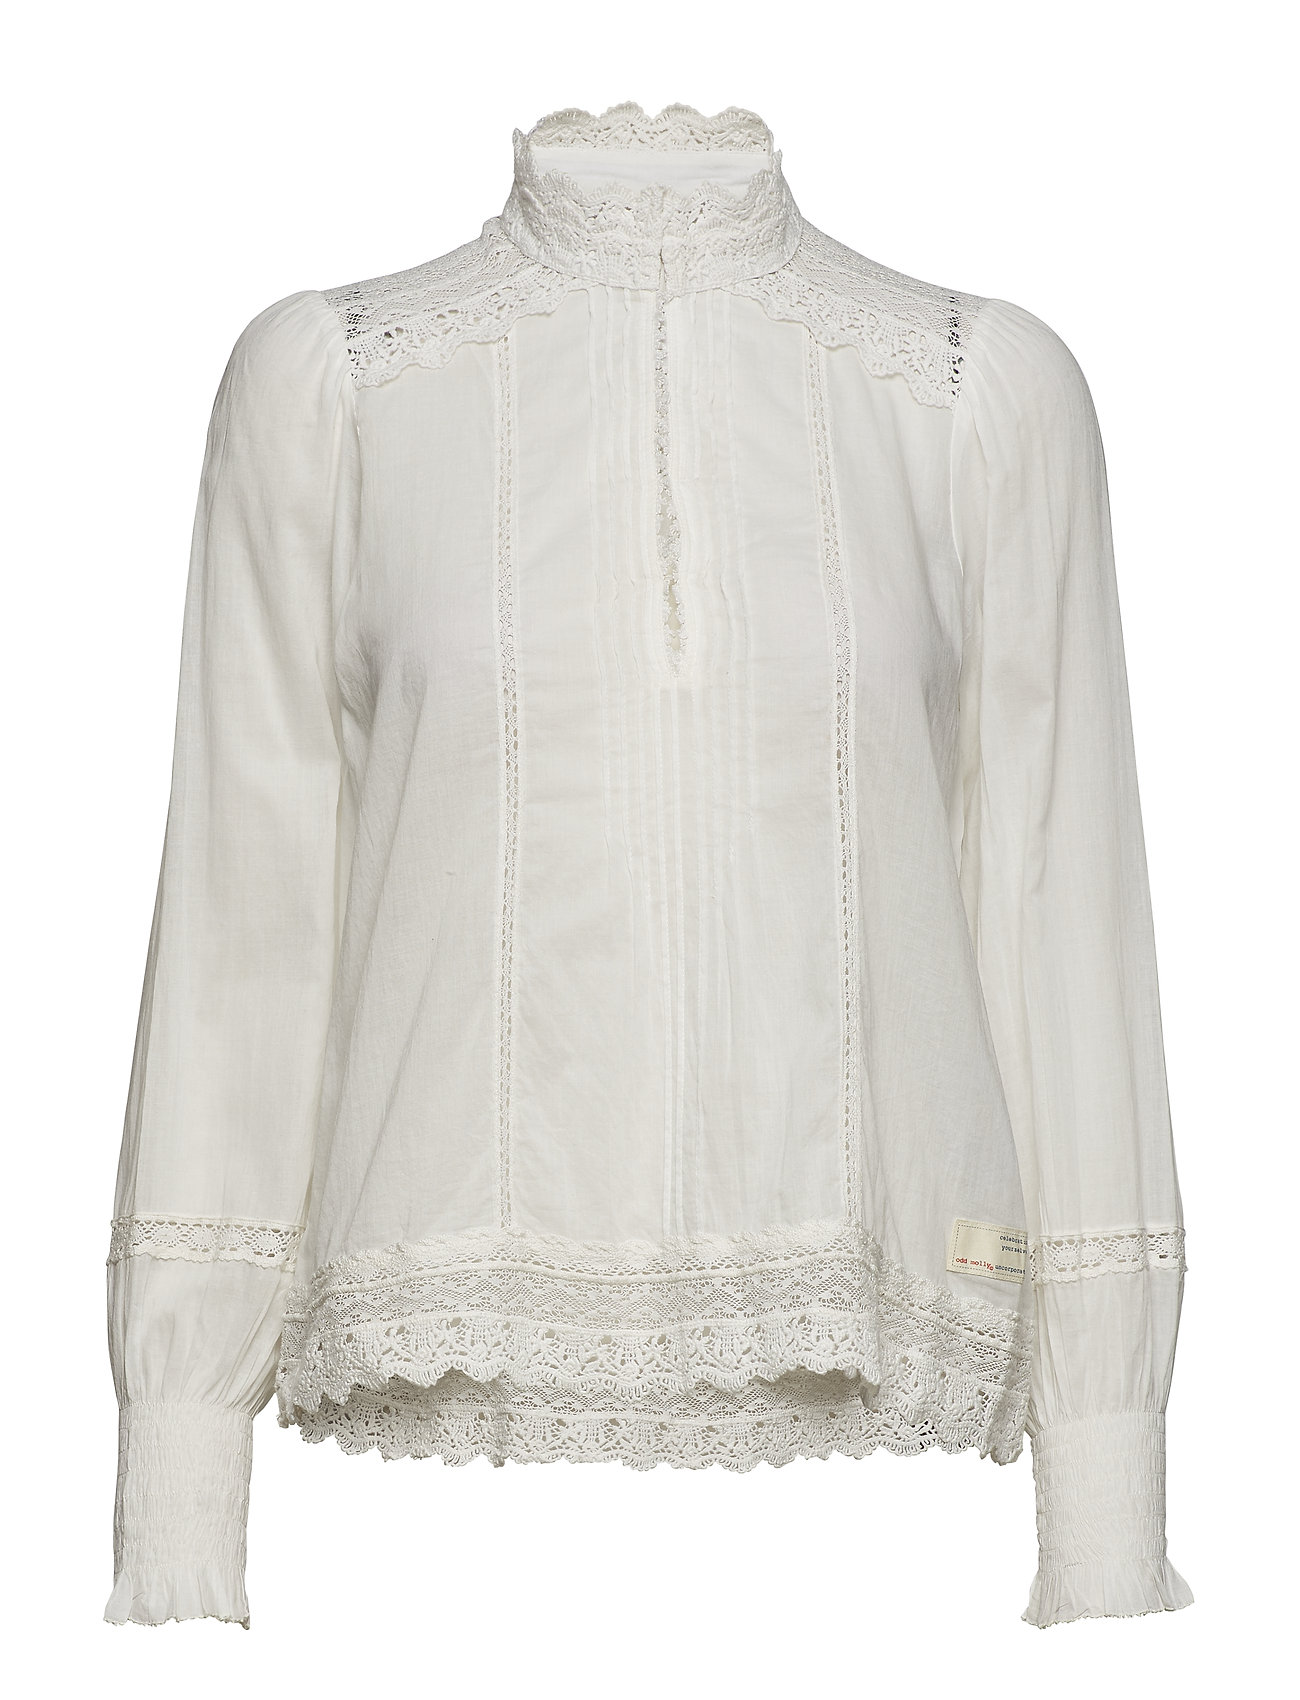 ODD MOLLY one of a kind blouse